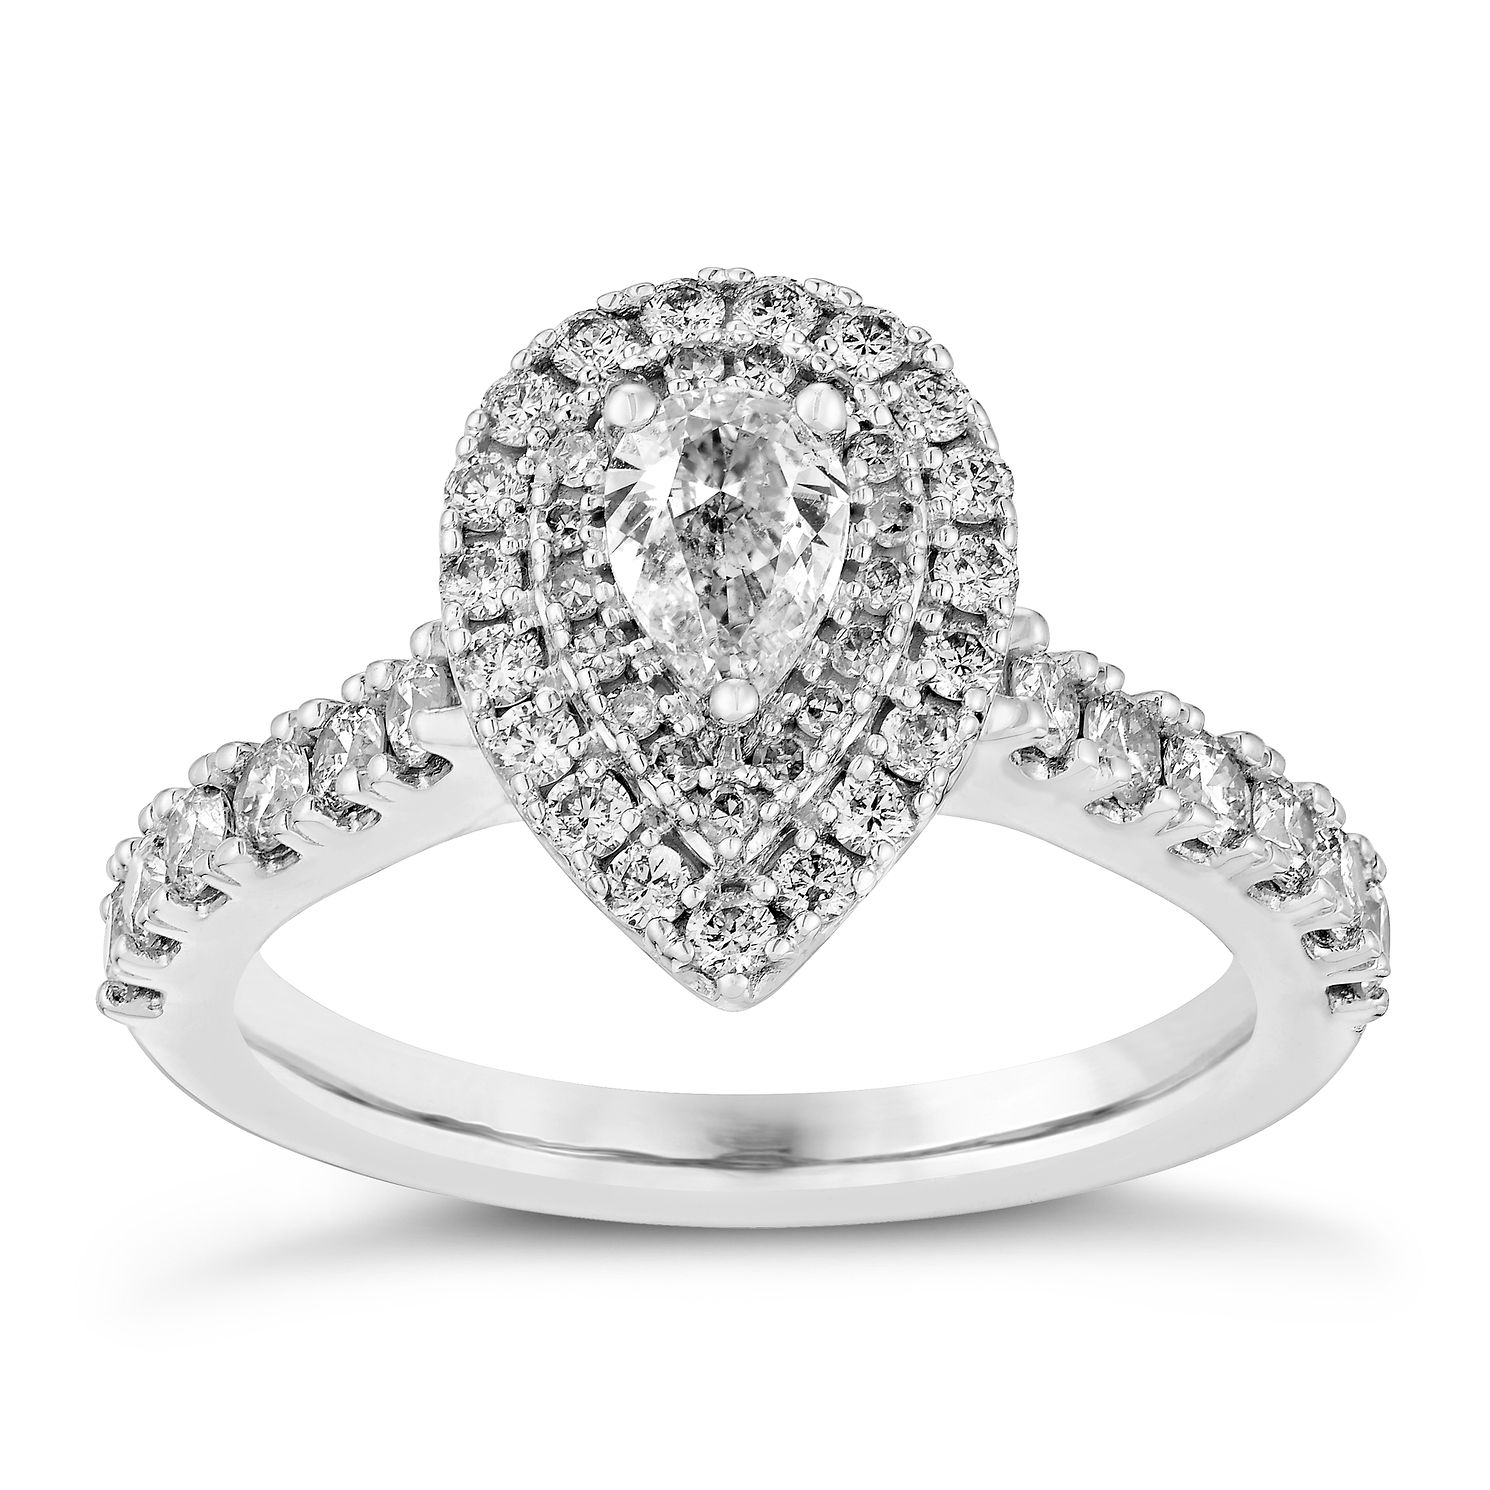 18ct White Gold 1ct Total Diamond Pear Cut Halo Ring - Product number 3140946